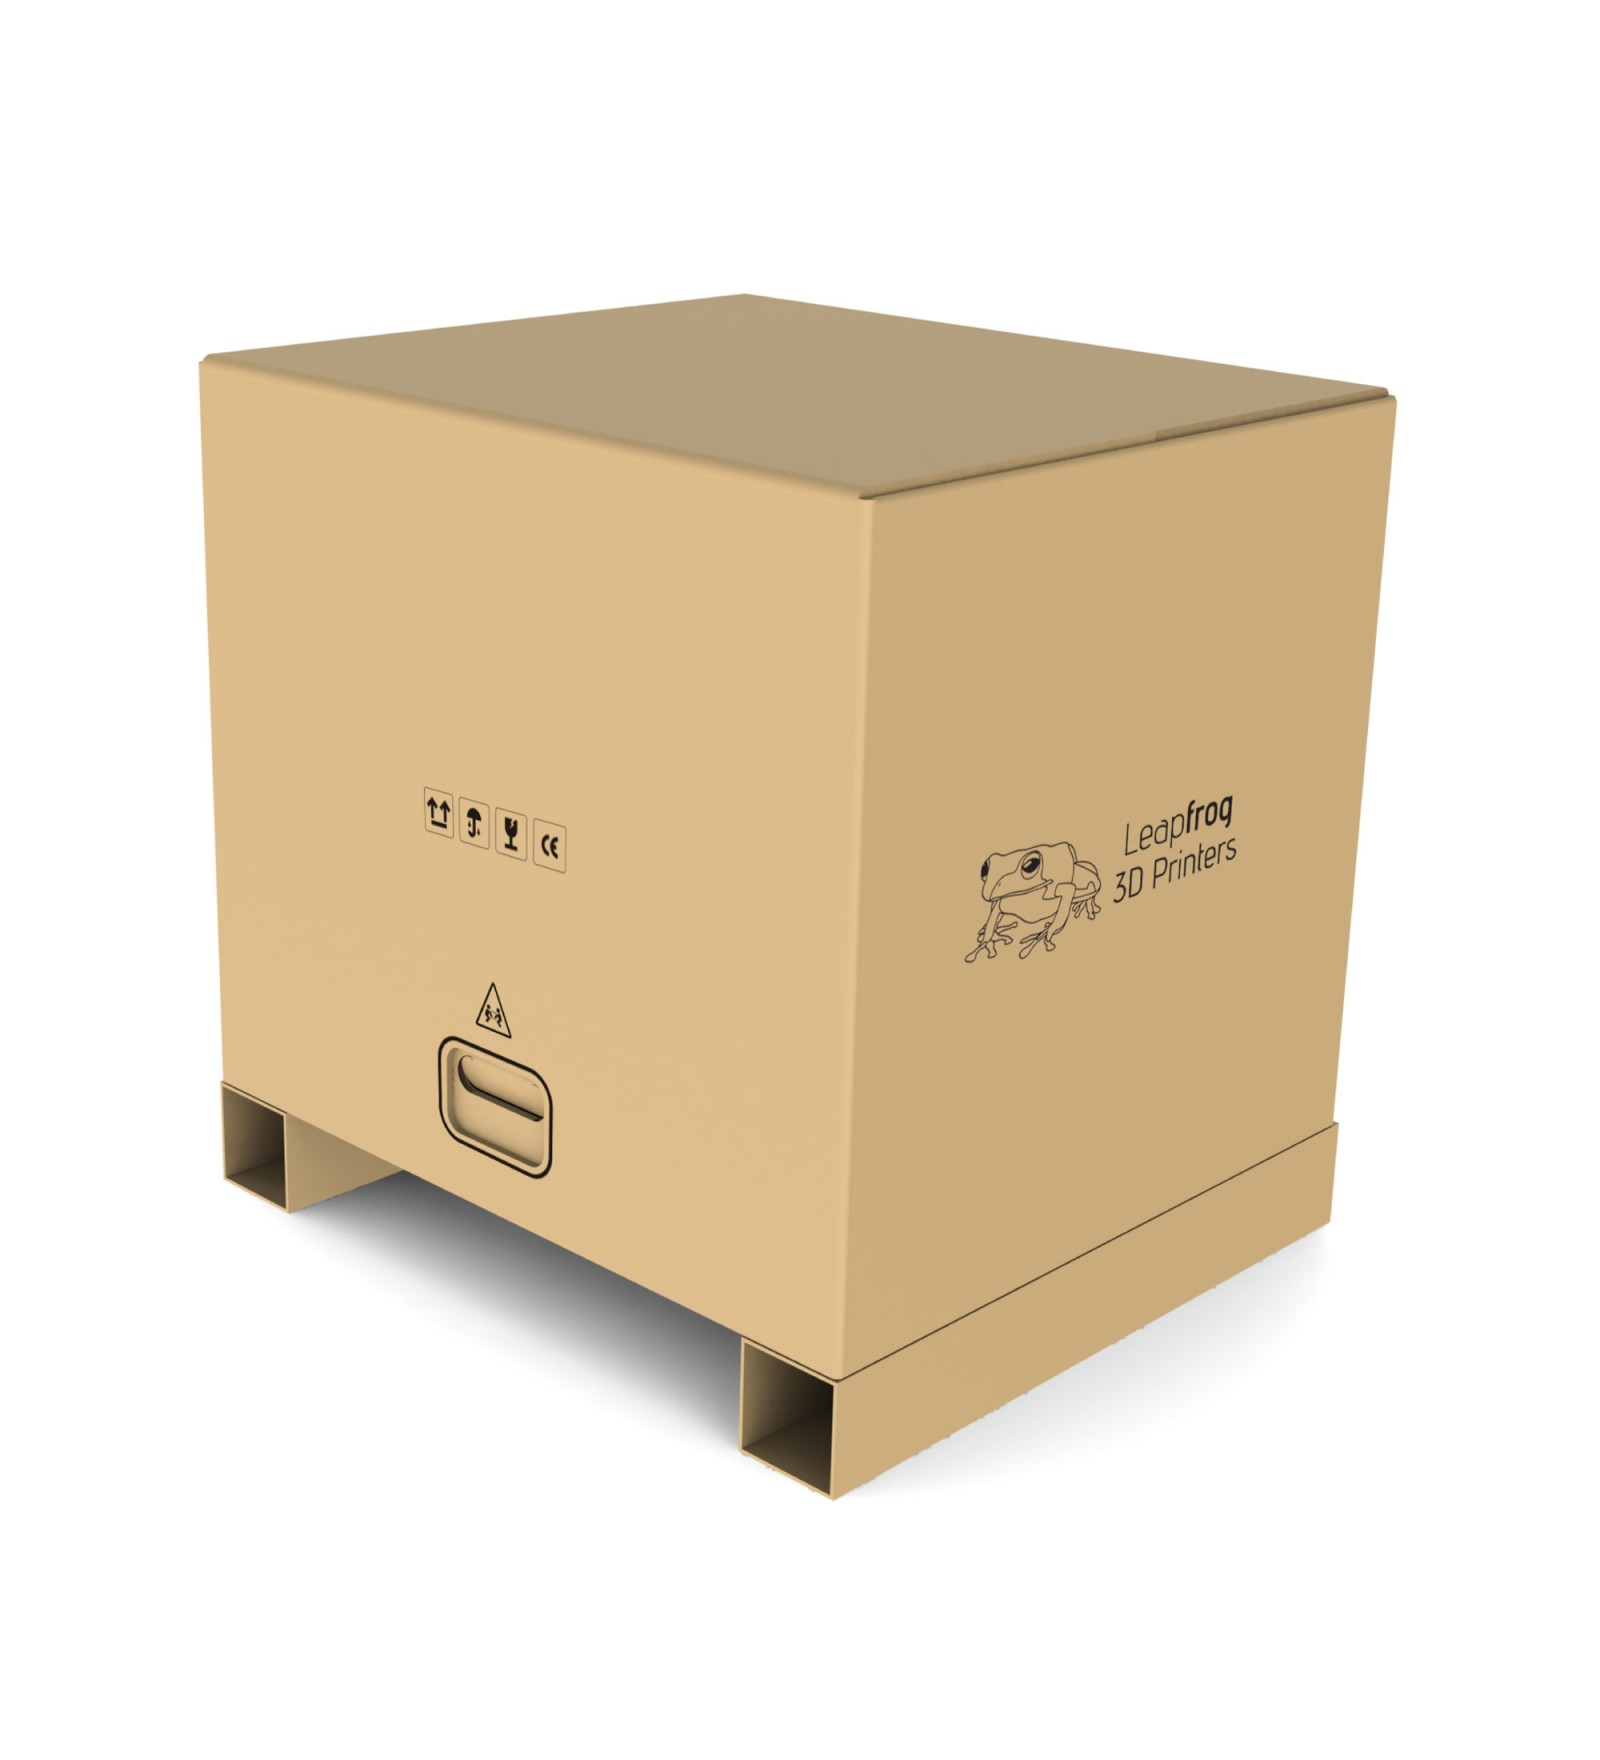 Transport packaging works to protect goods while they are in transit, and because most shipments are subject to more than one mode of transportation throughout their journey, packaging needs to be designed to stand up to both local and export conditions.